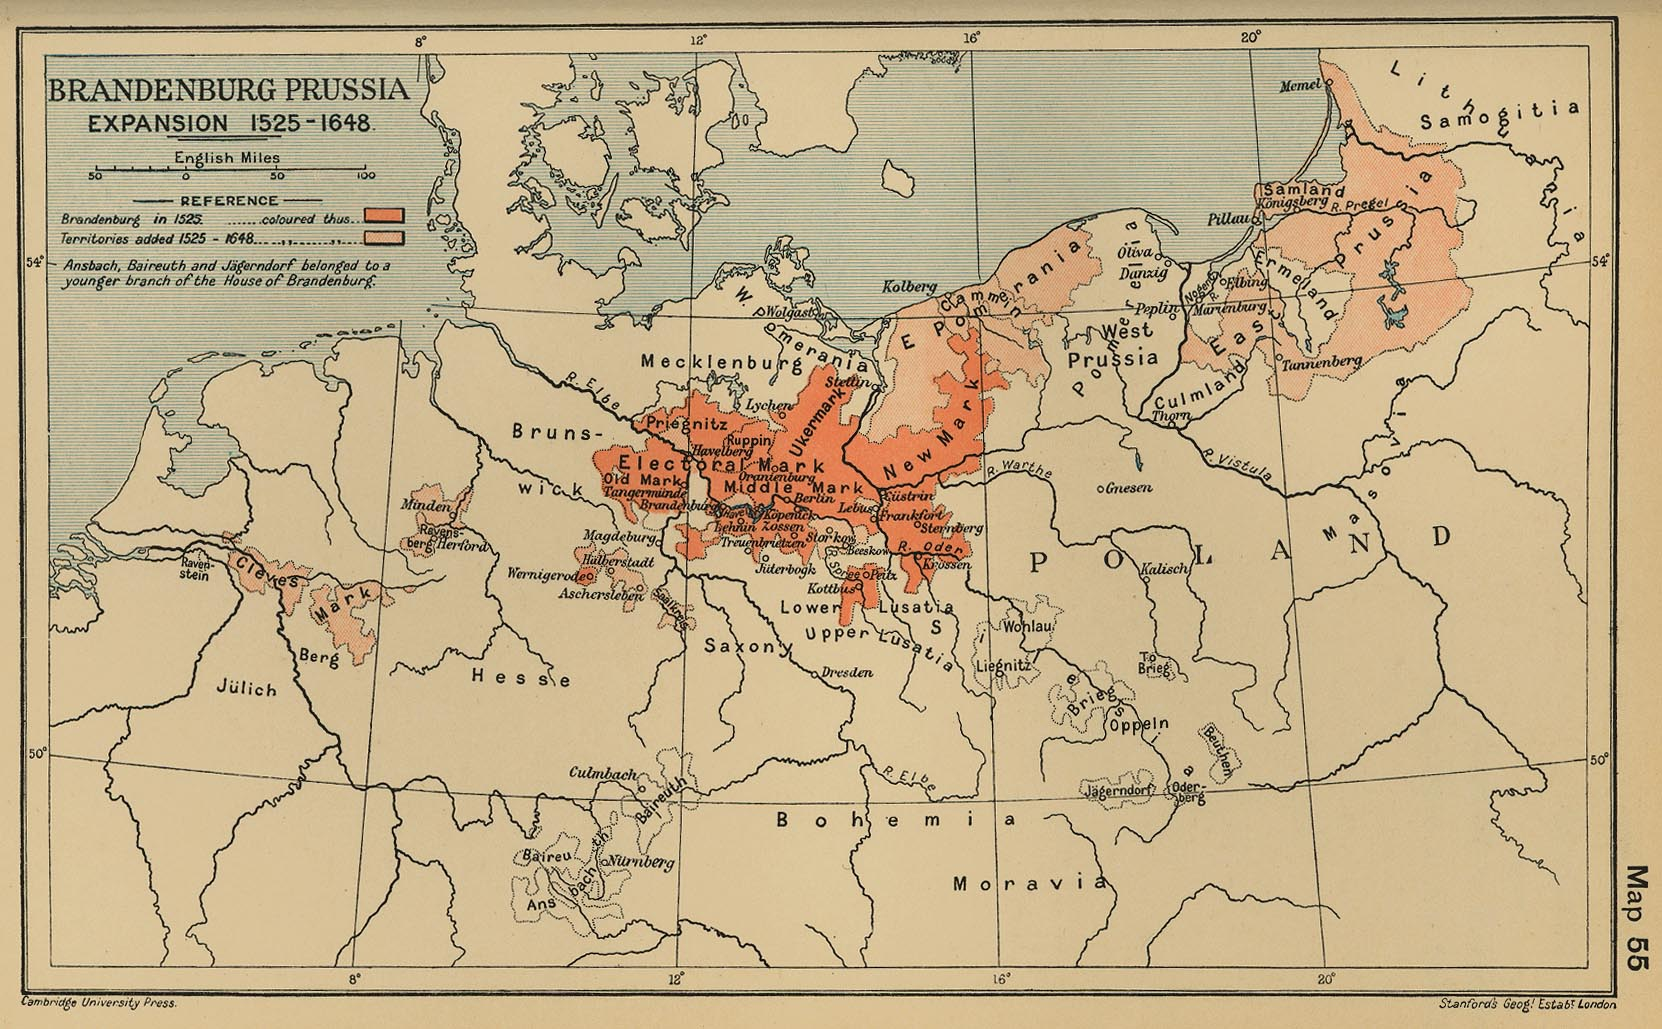 Map of Brandenburg Prussia Expansion 1525-1648